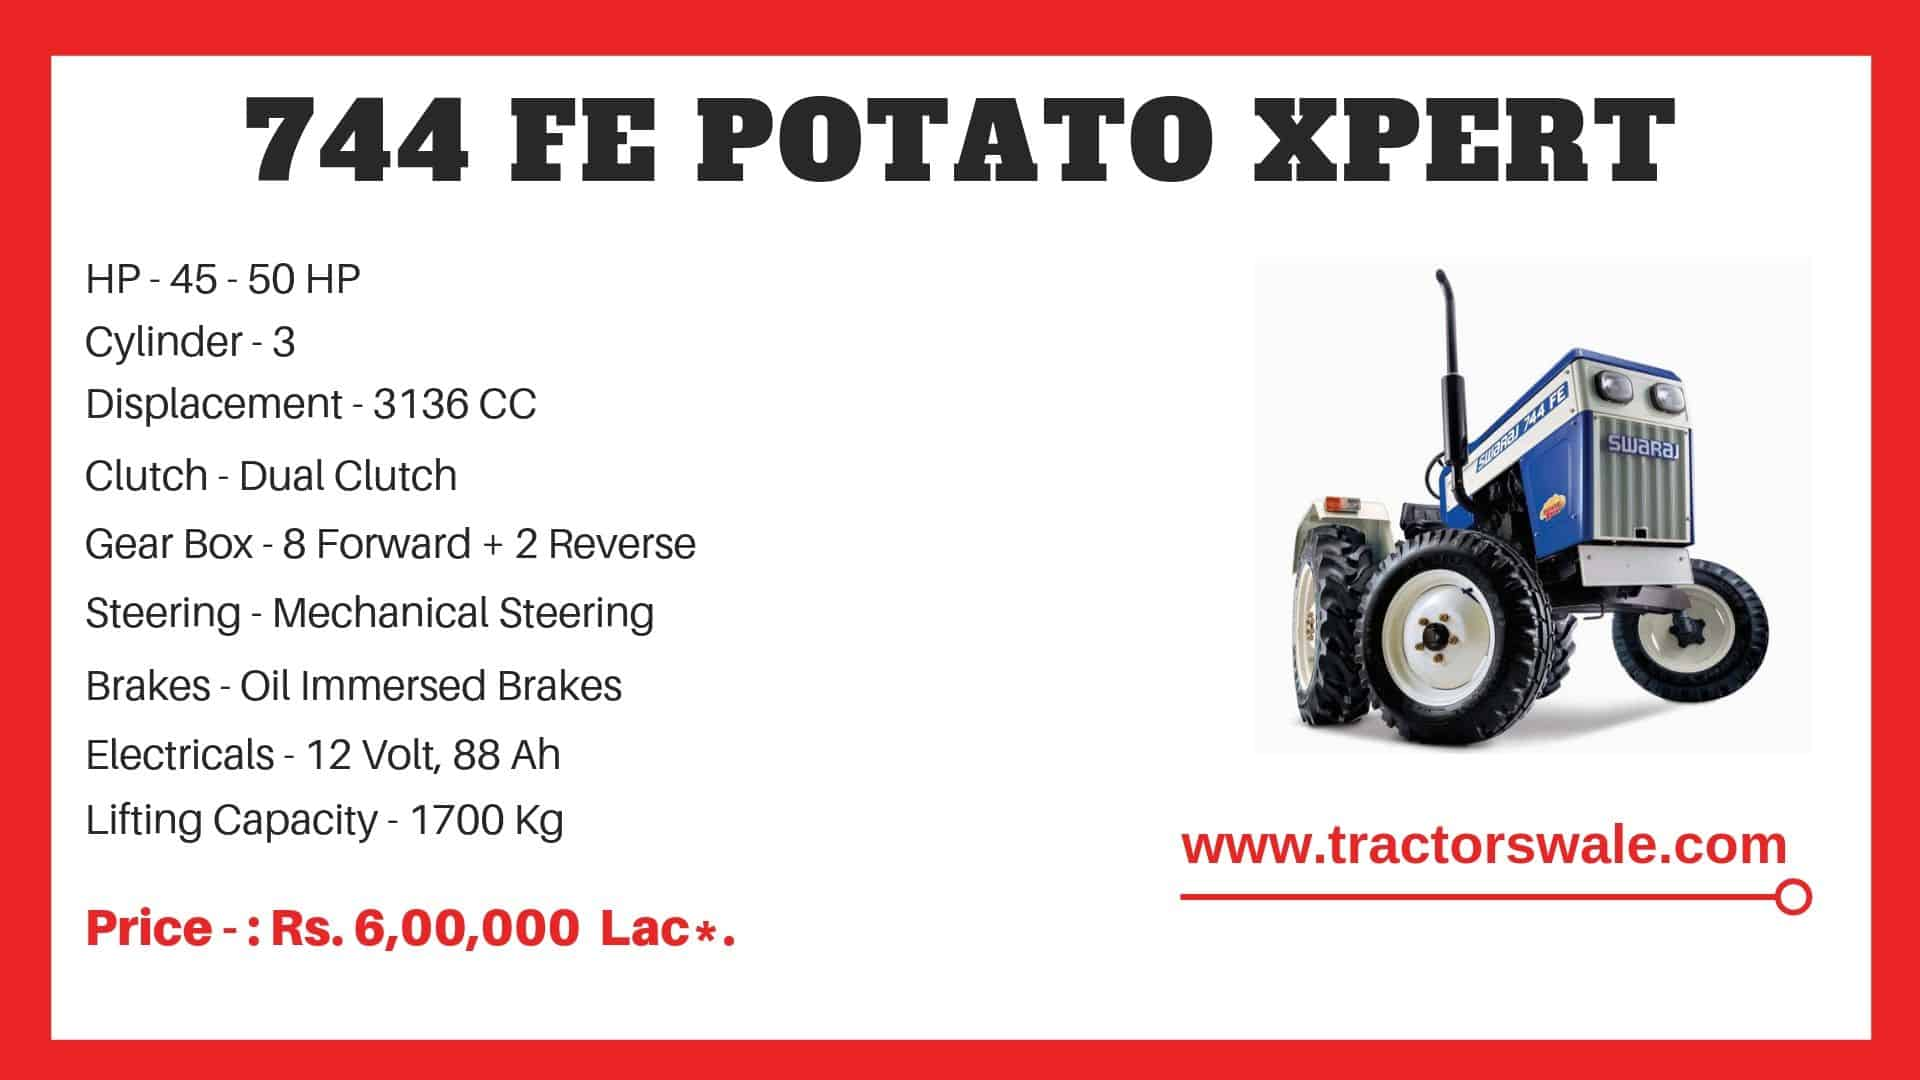 Specification of Swaraj 744 FE Potato Xpert Tractor